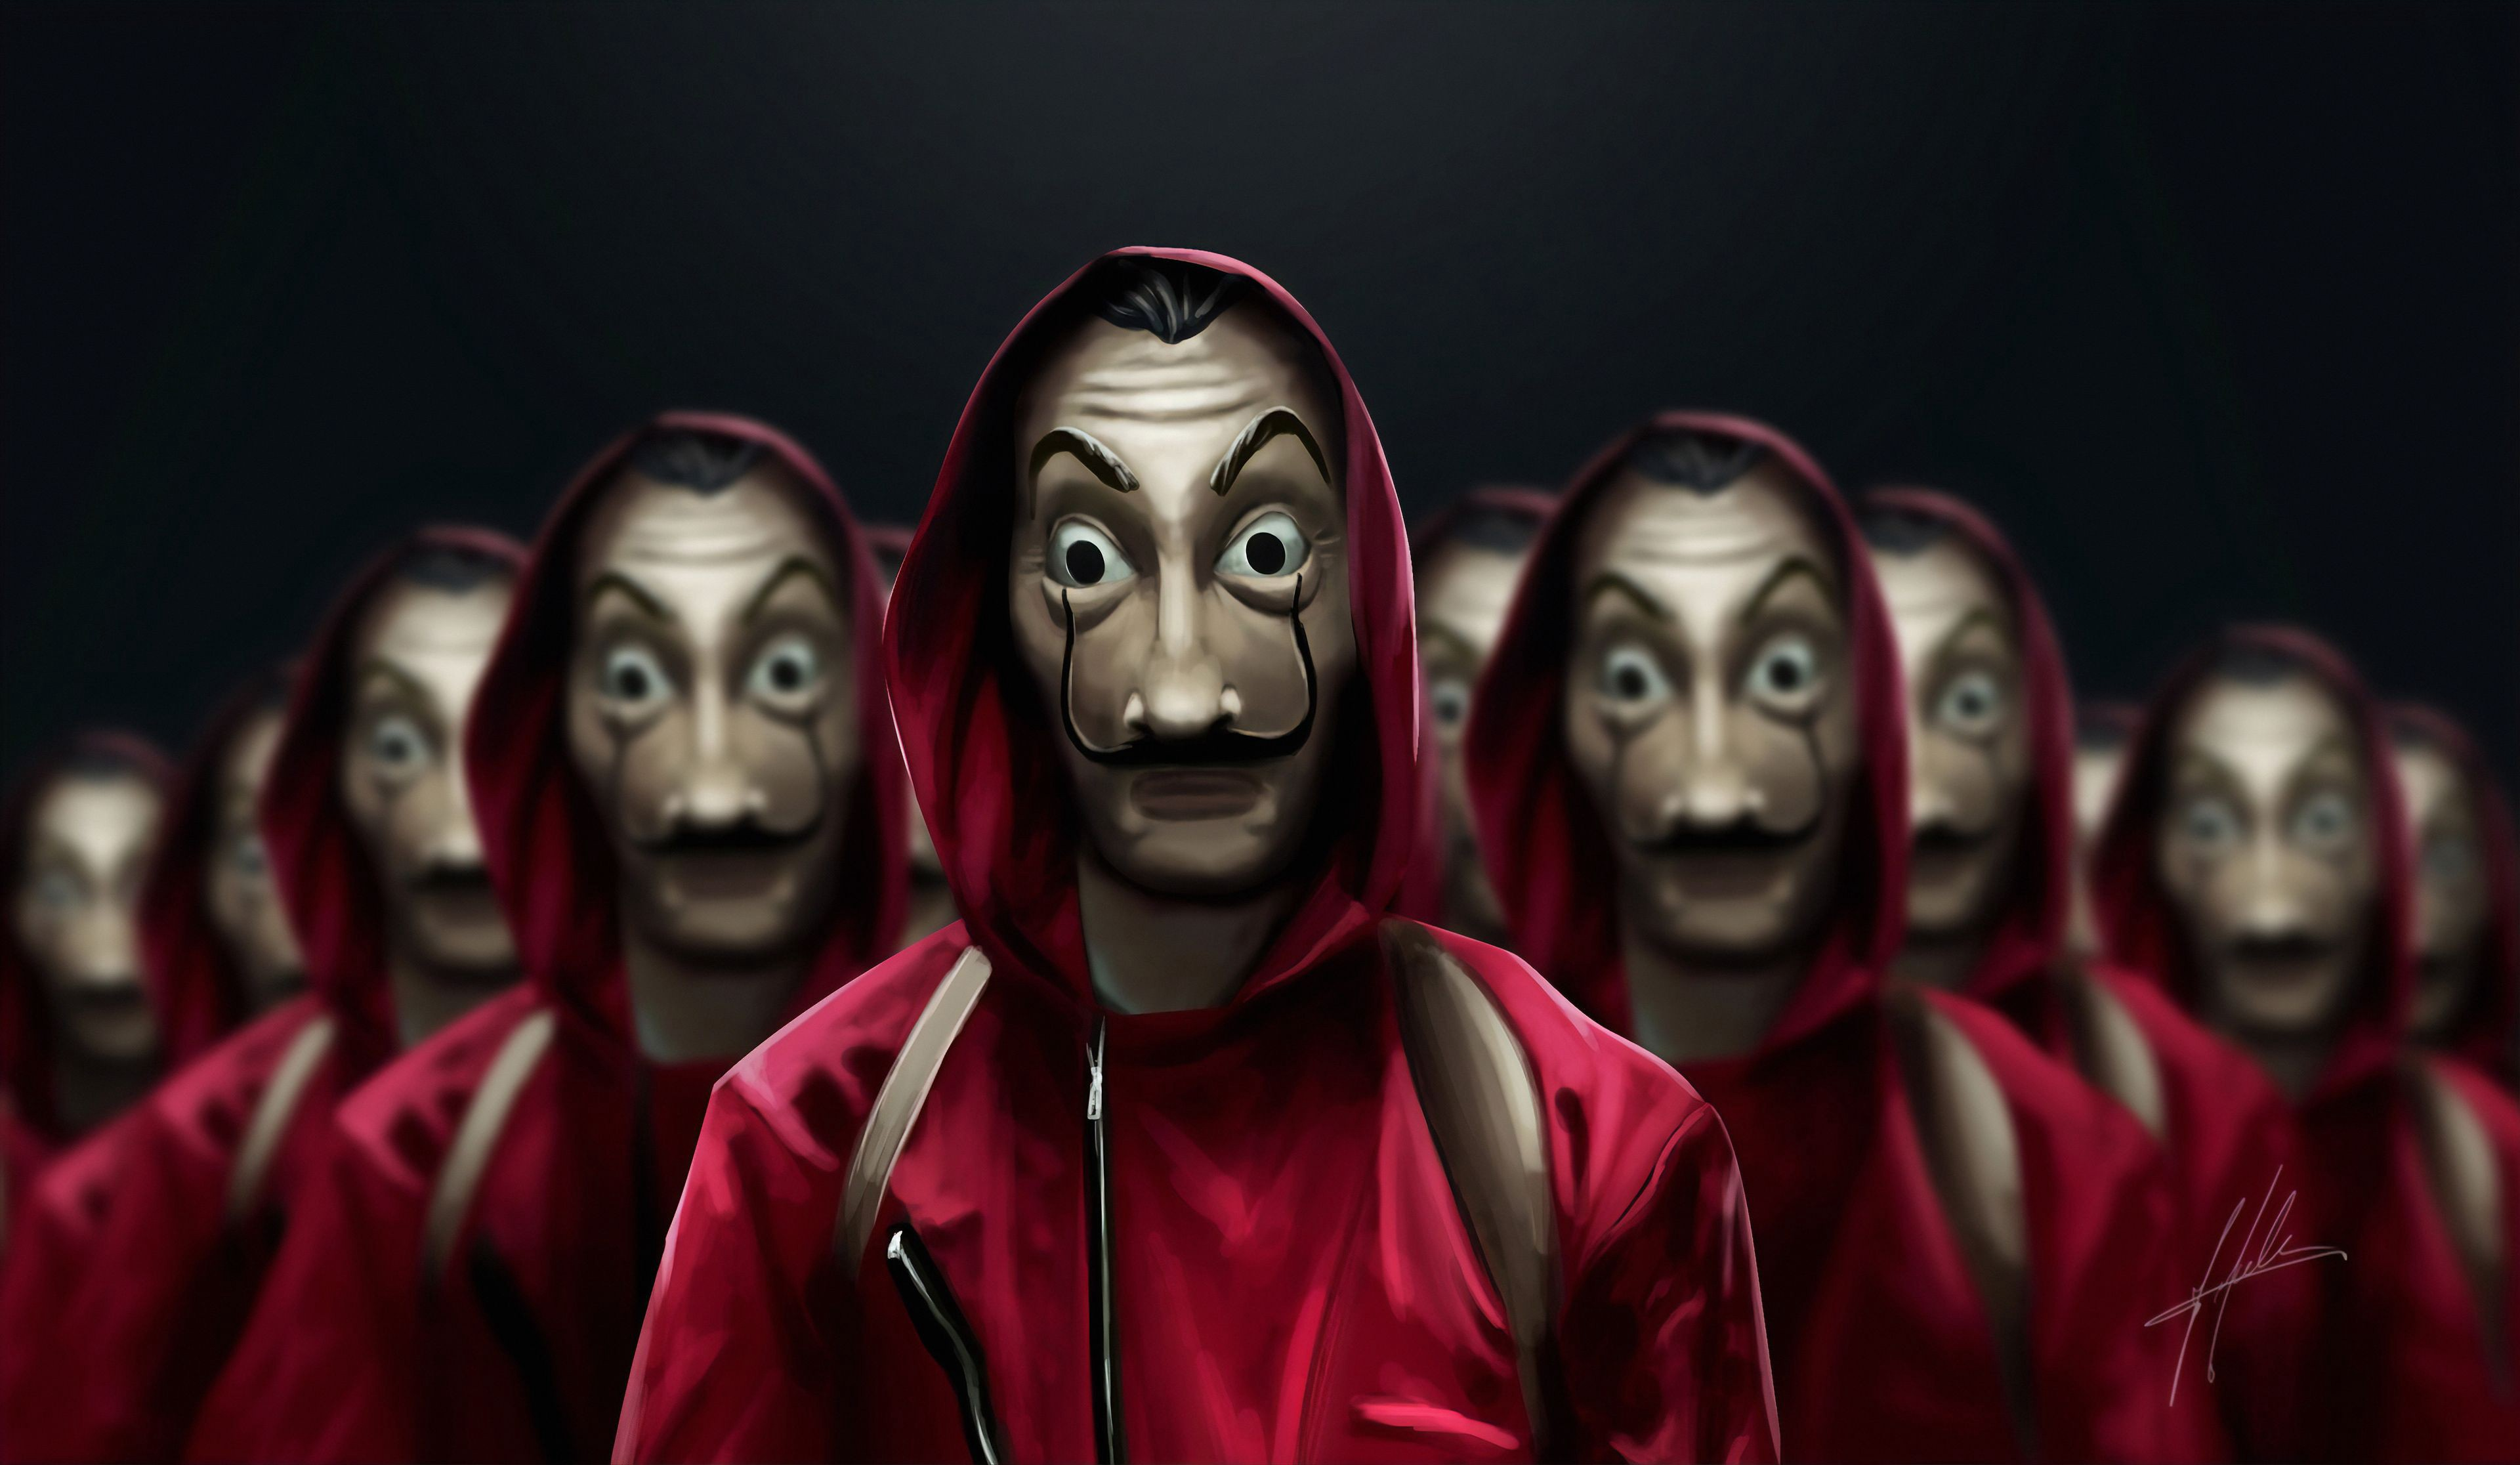 A psychological character sketch of 'THE PROFESSOR' (money heist)